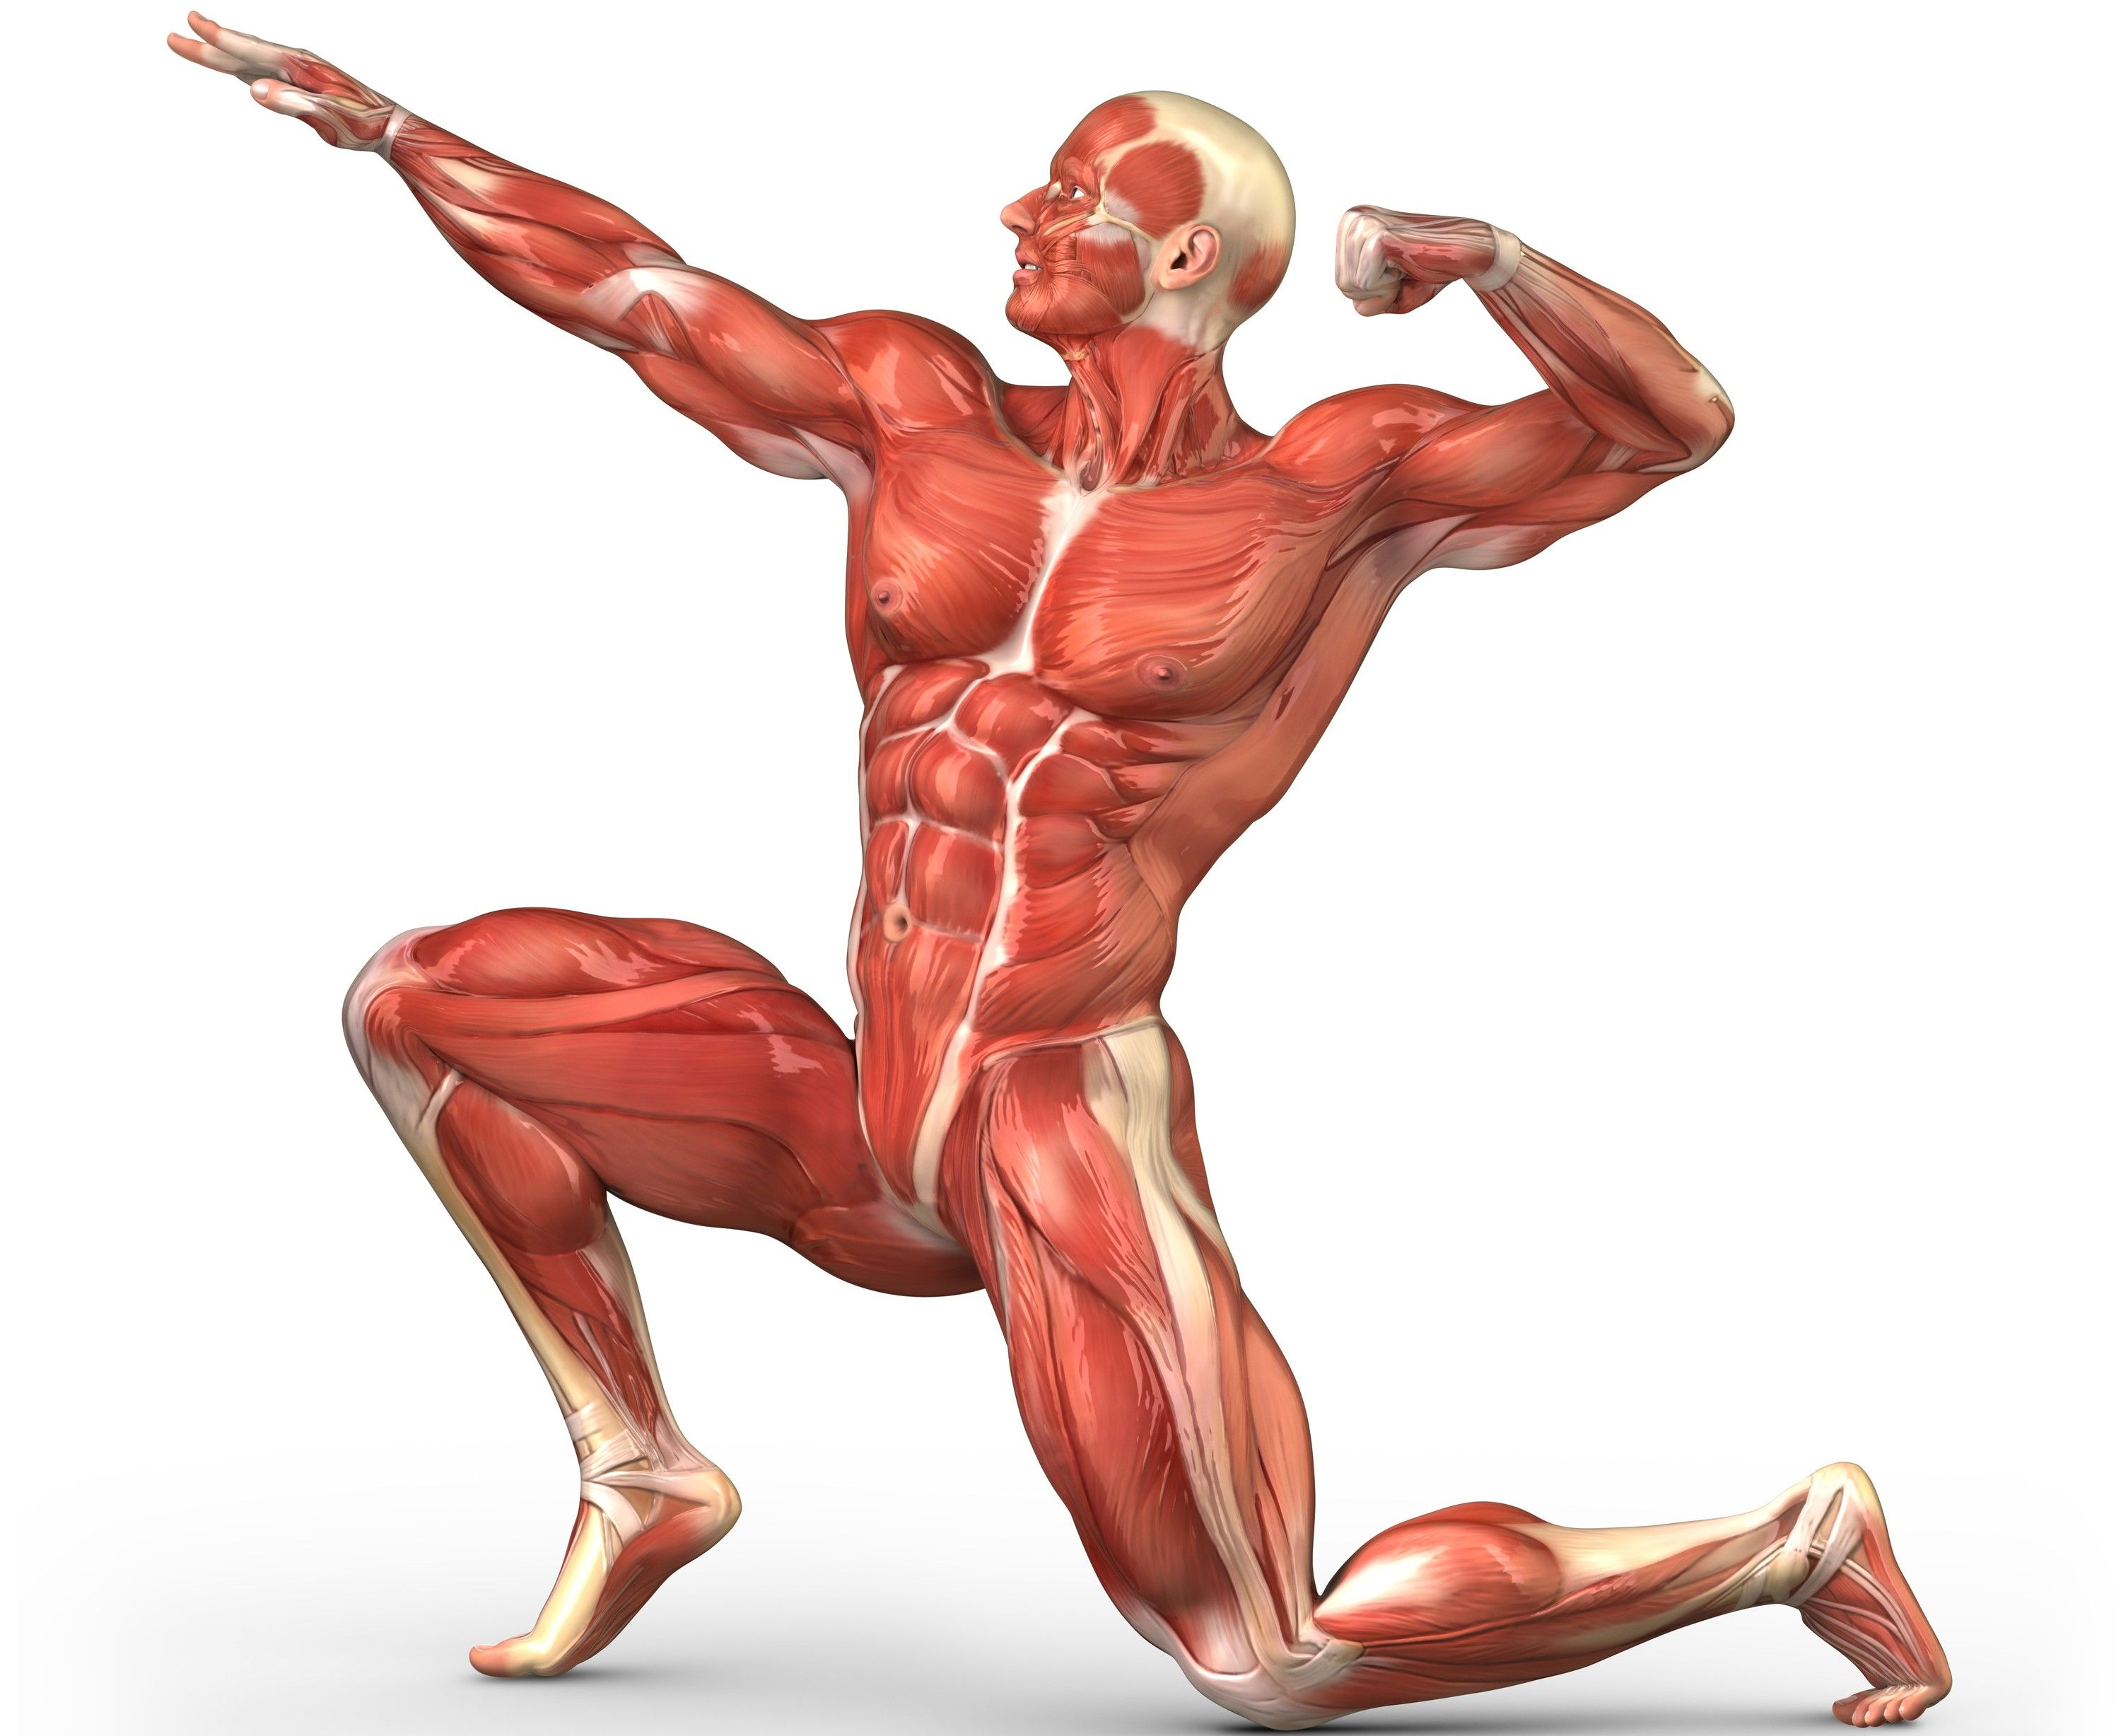 human muscular system diagram unlabeled - google search | muscular, Muscles